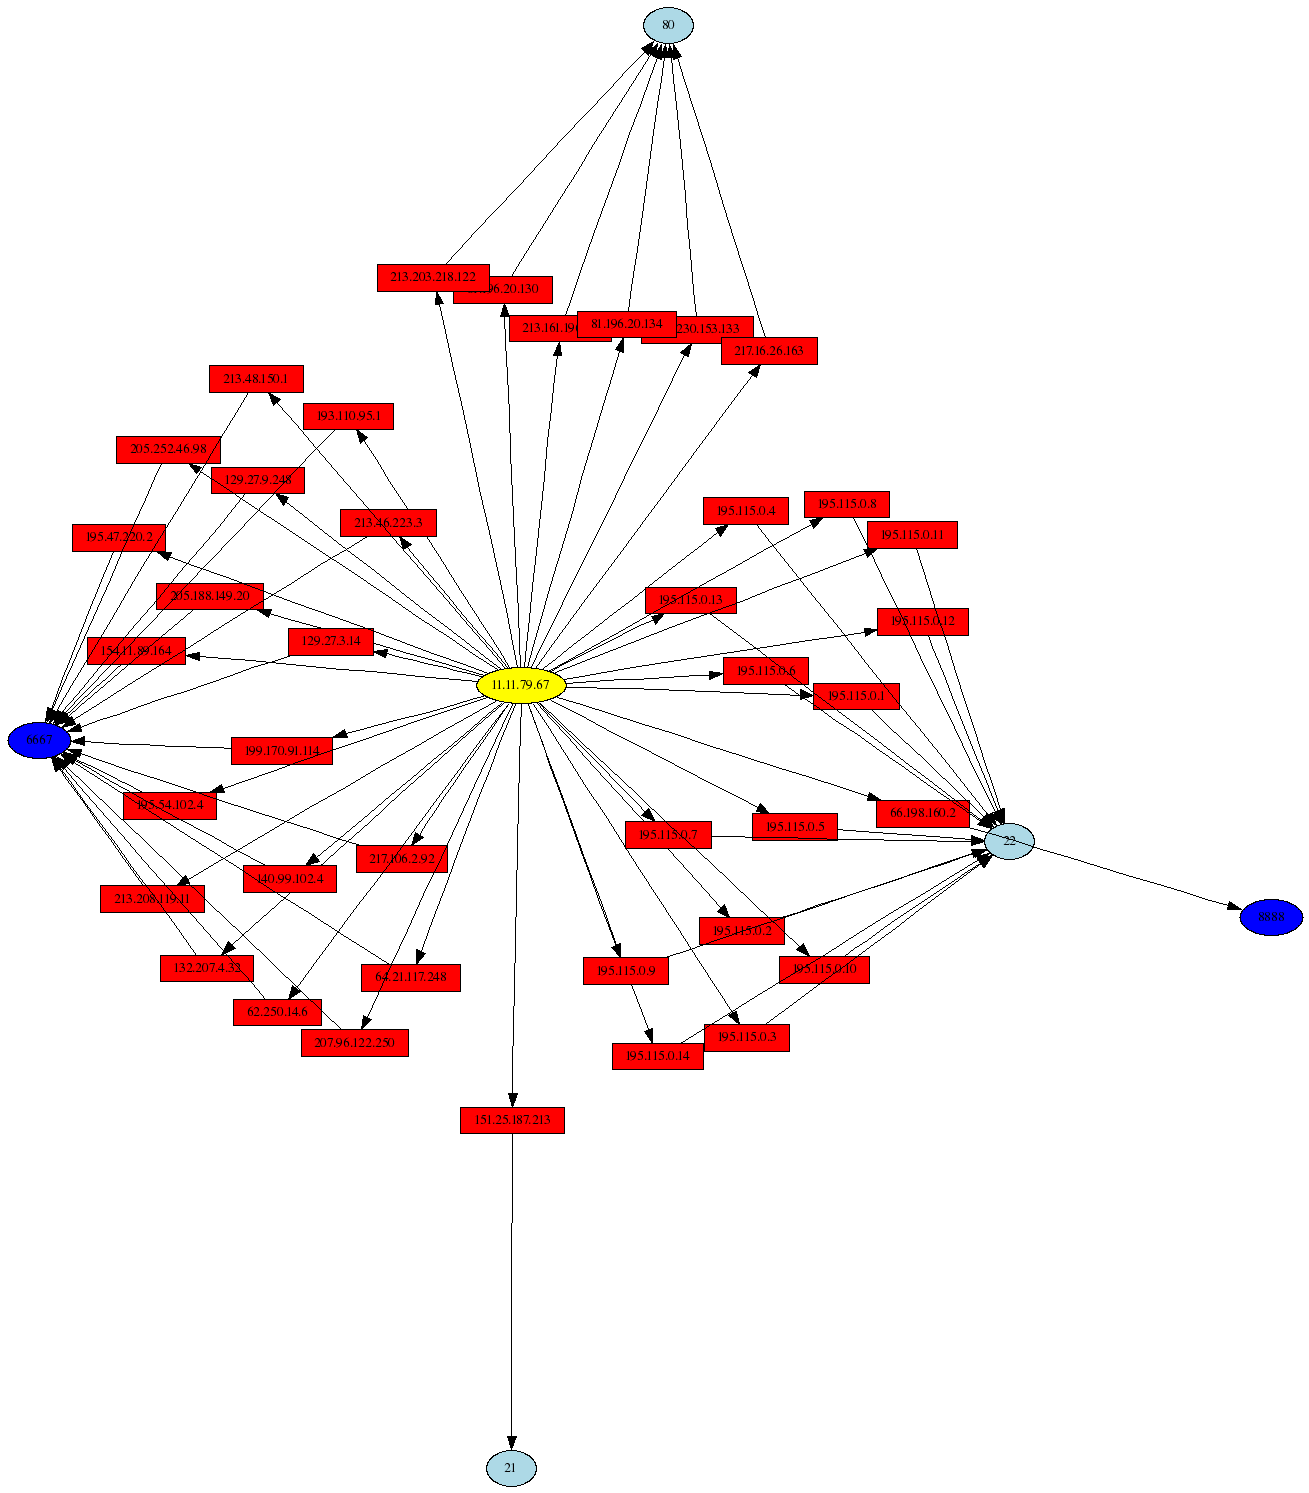 Compromised Honeynet system: Link graph of outbound connections